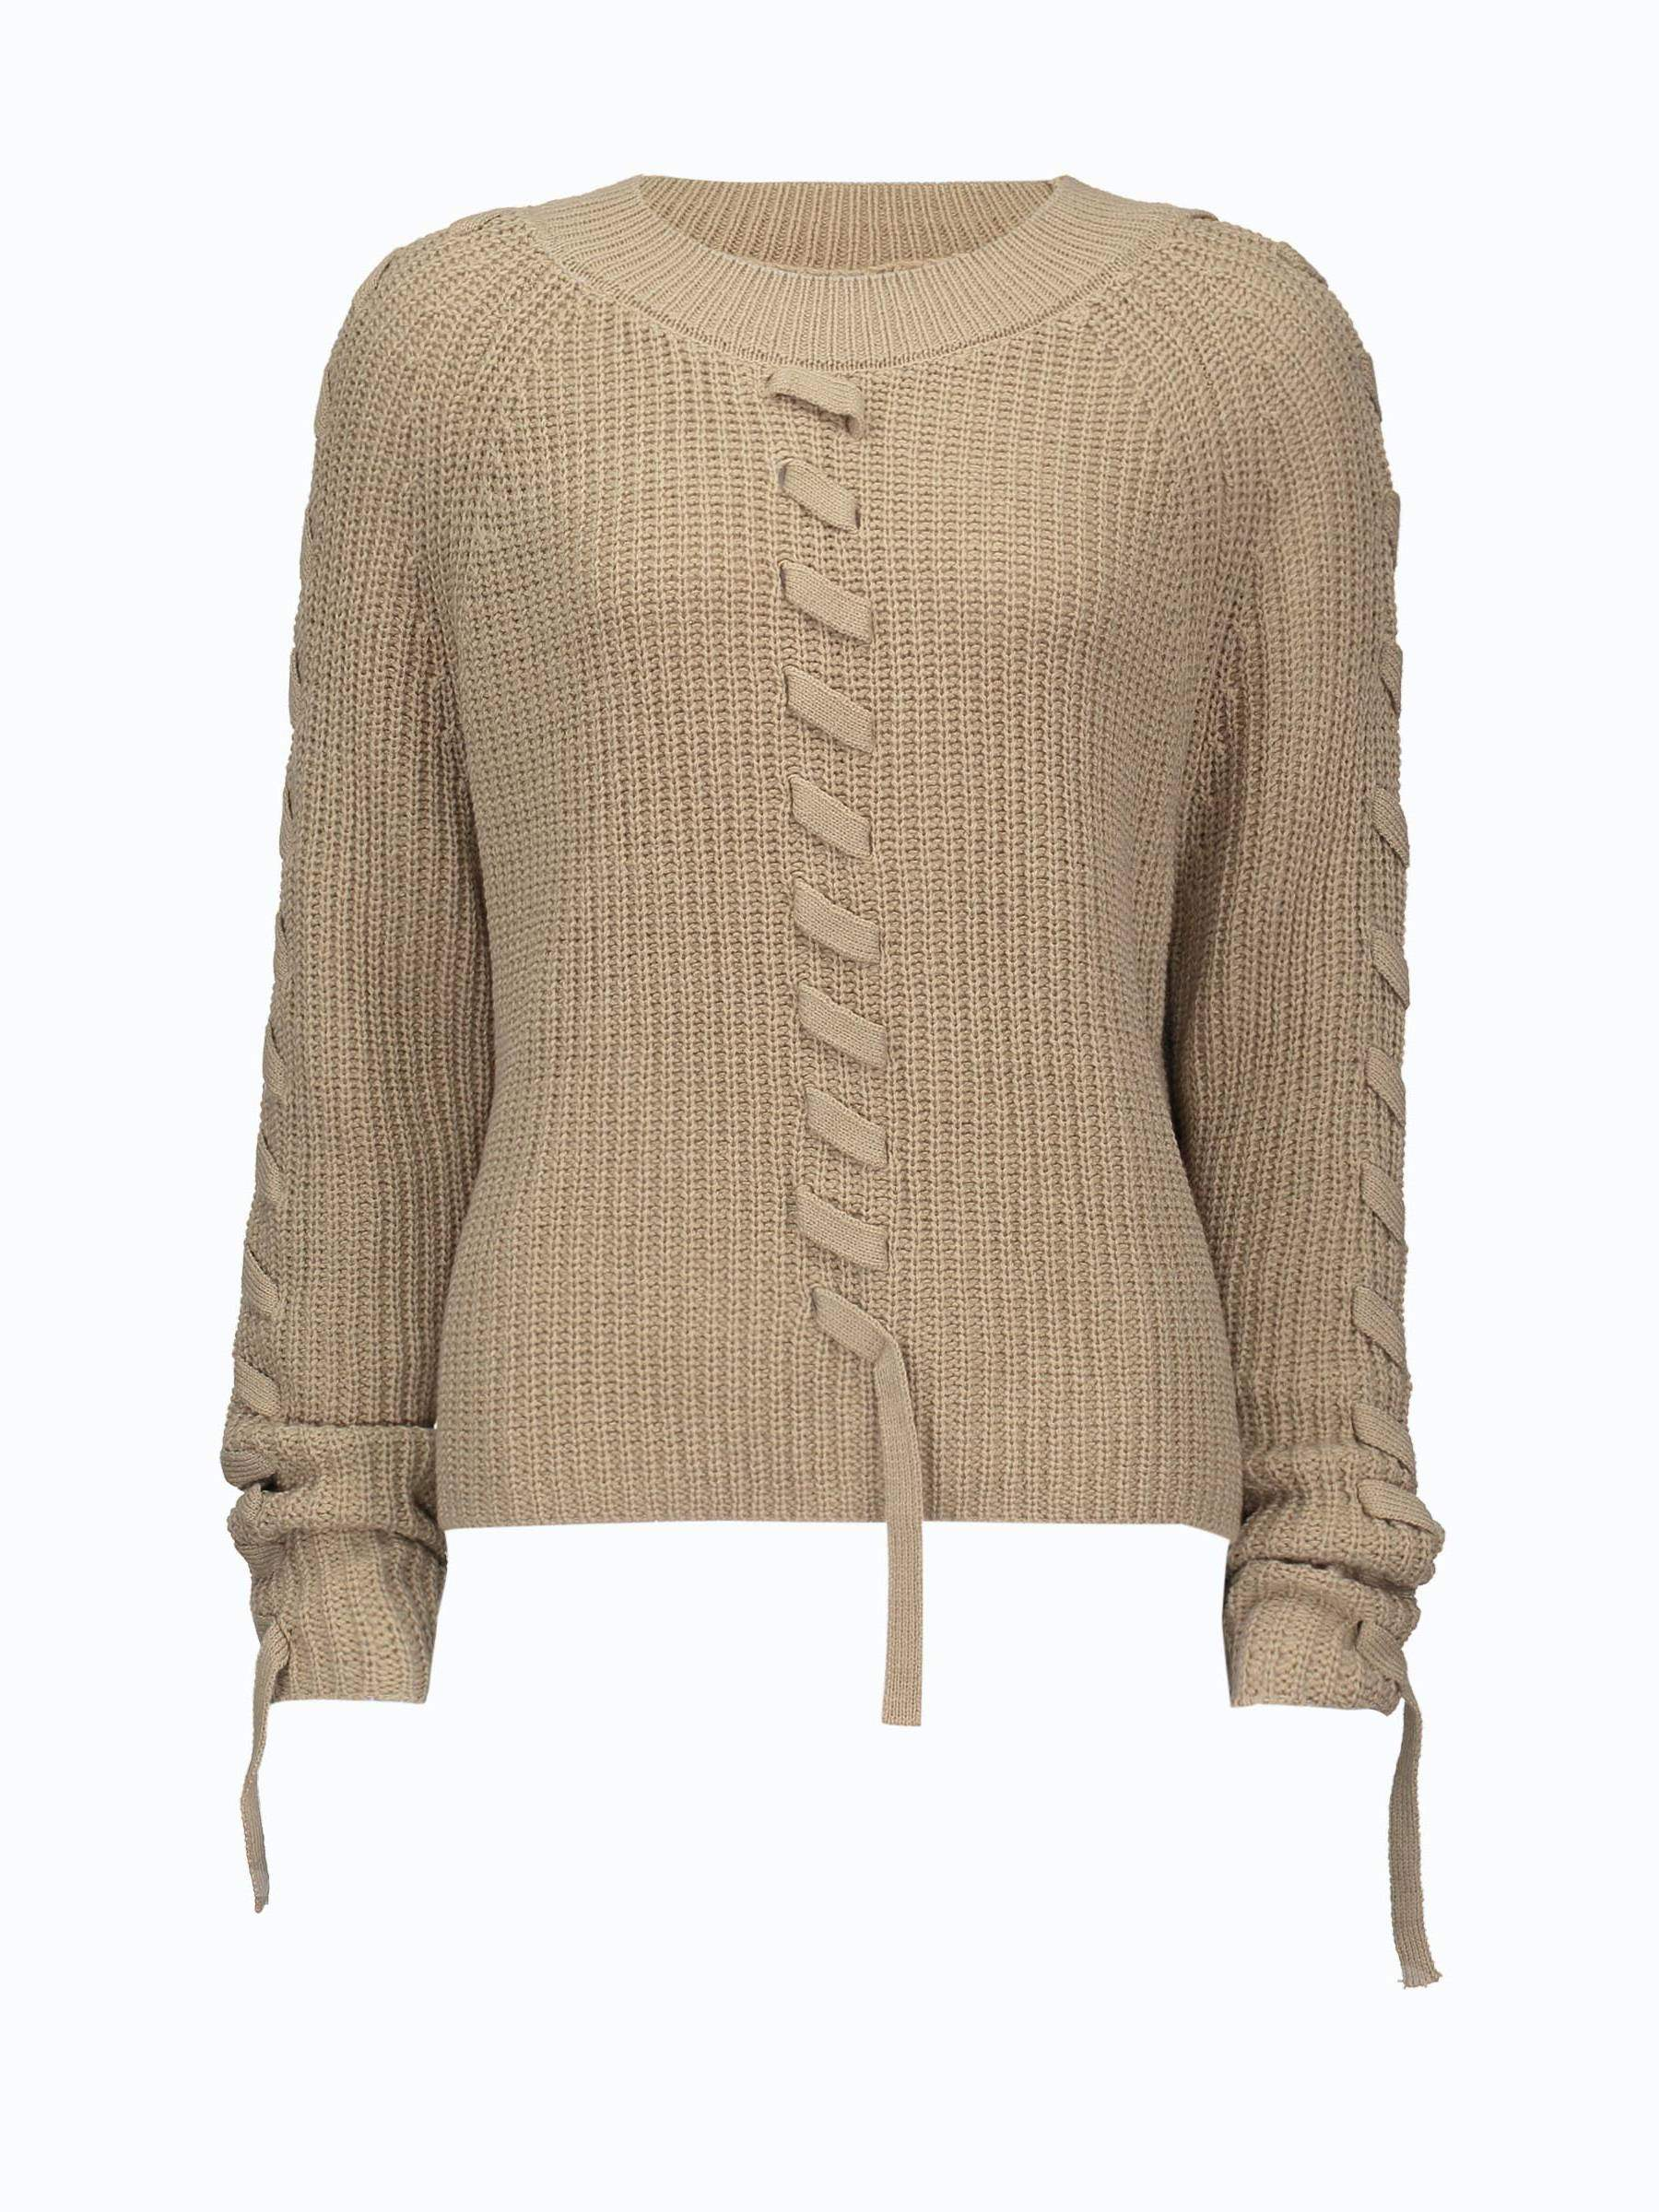 Buy Plain Lace Up Round Neck Women's Sweater, Spring,Fall,Winter, 13379367 for $15.81 in TBDress store